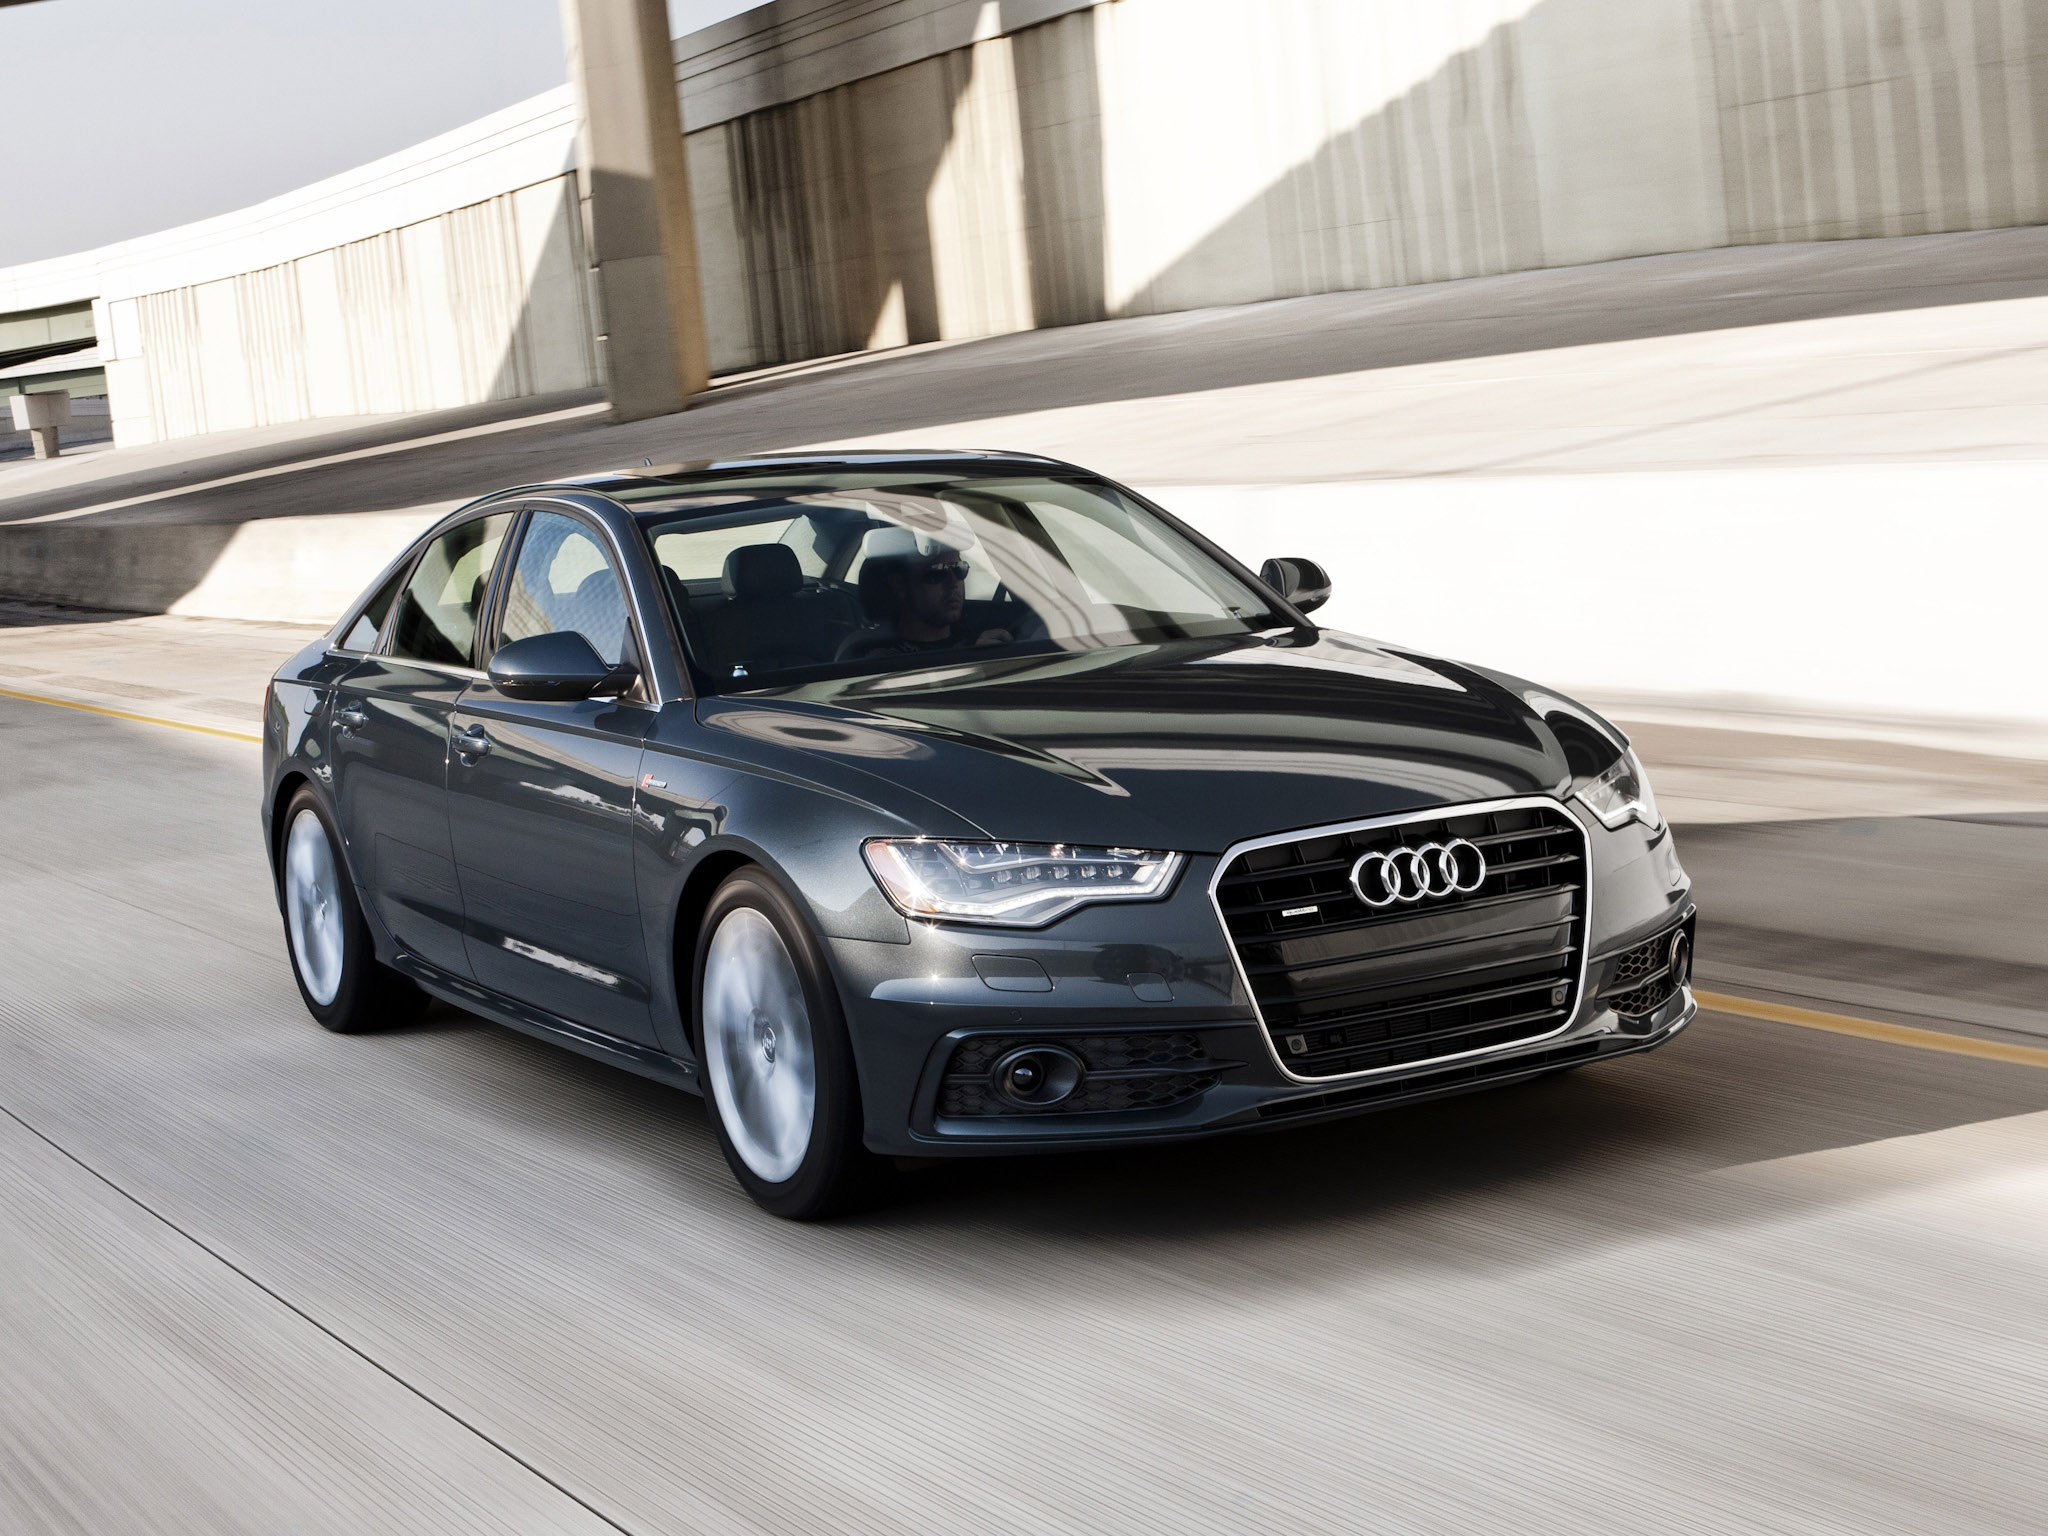 audi a6 3 0t s line sedan usa 2011 audi a6 3 0t s line sedan usa 2011 photo 02 car in pictures. Black Bedroom Furniture Sets. Home Design Ideas